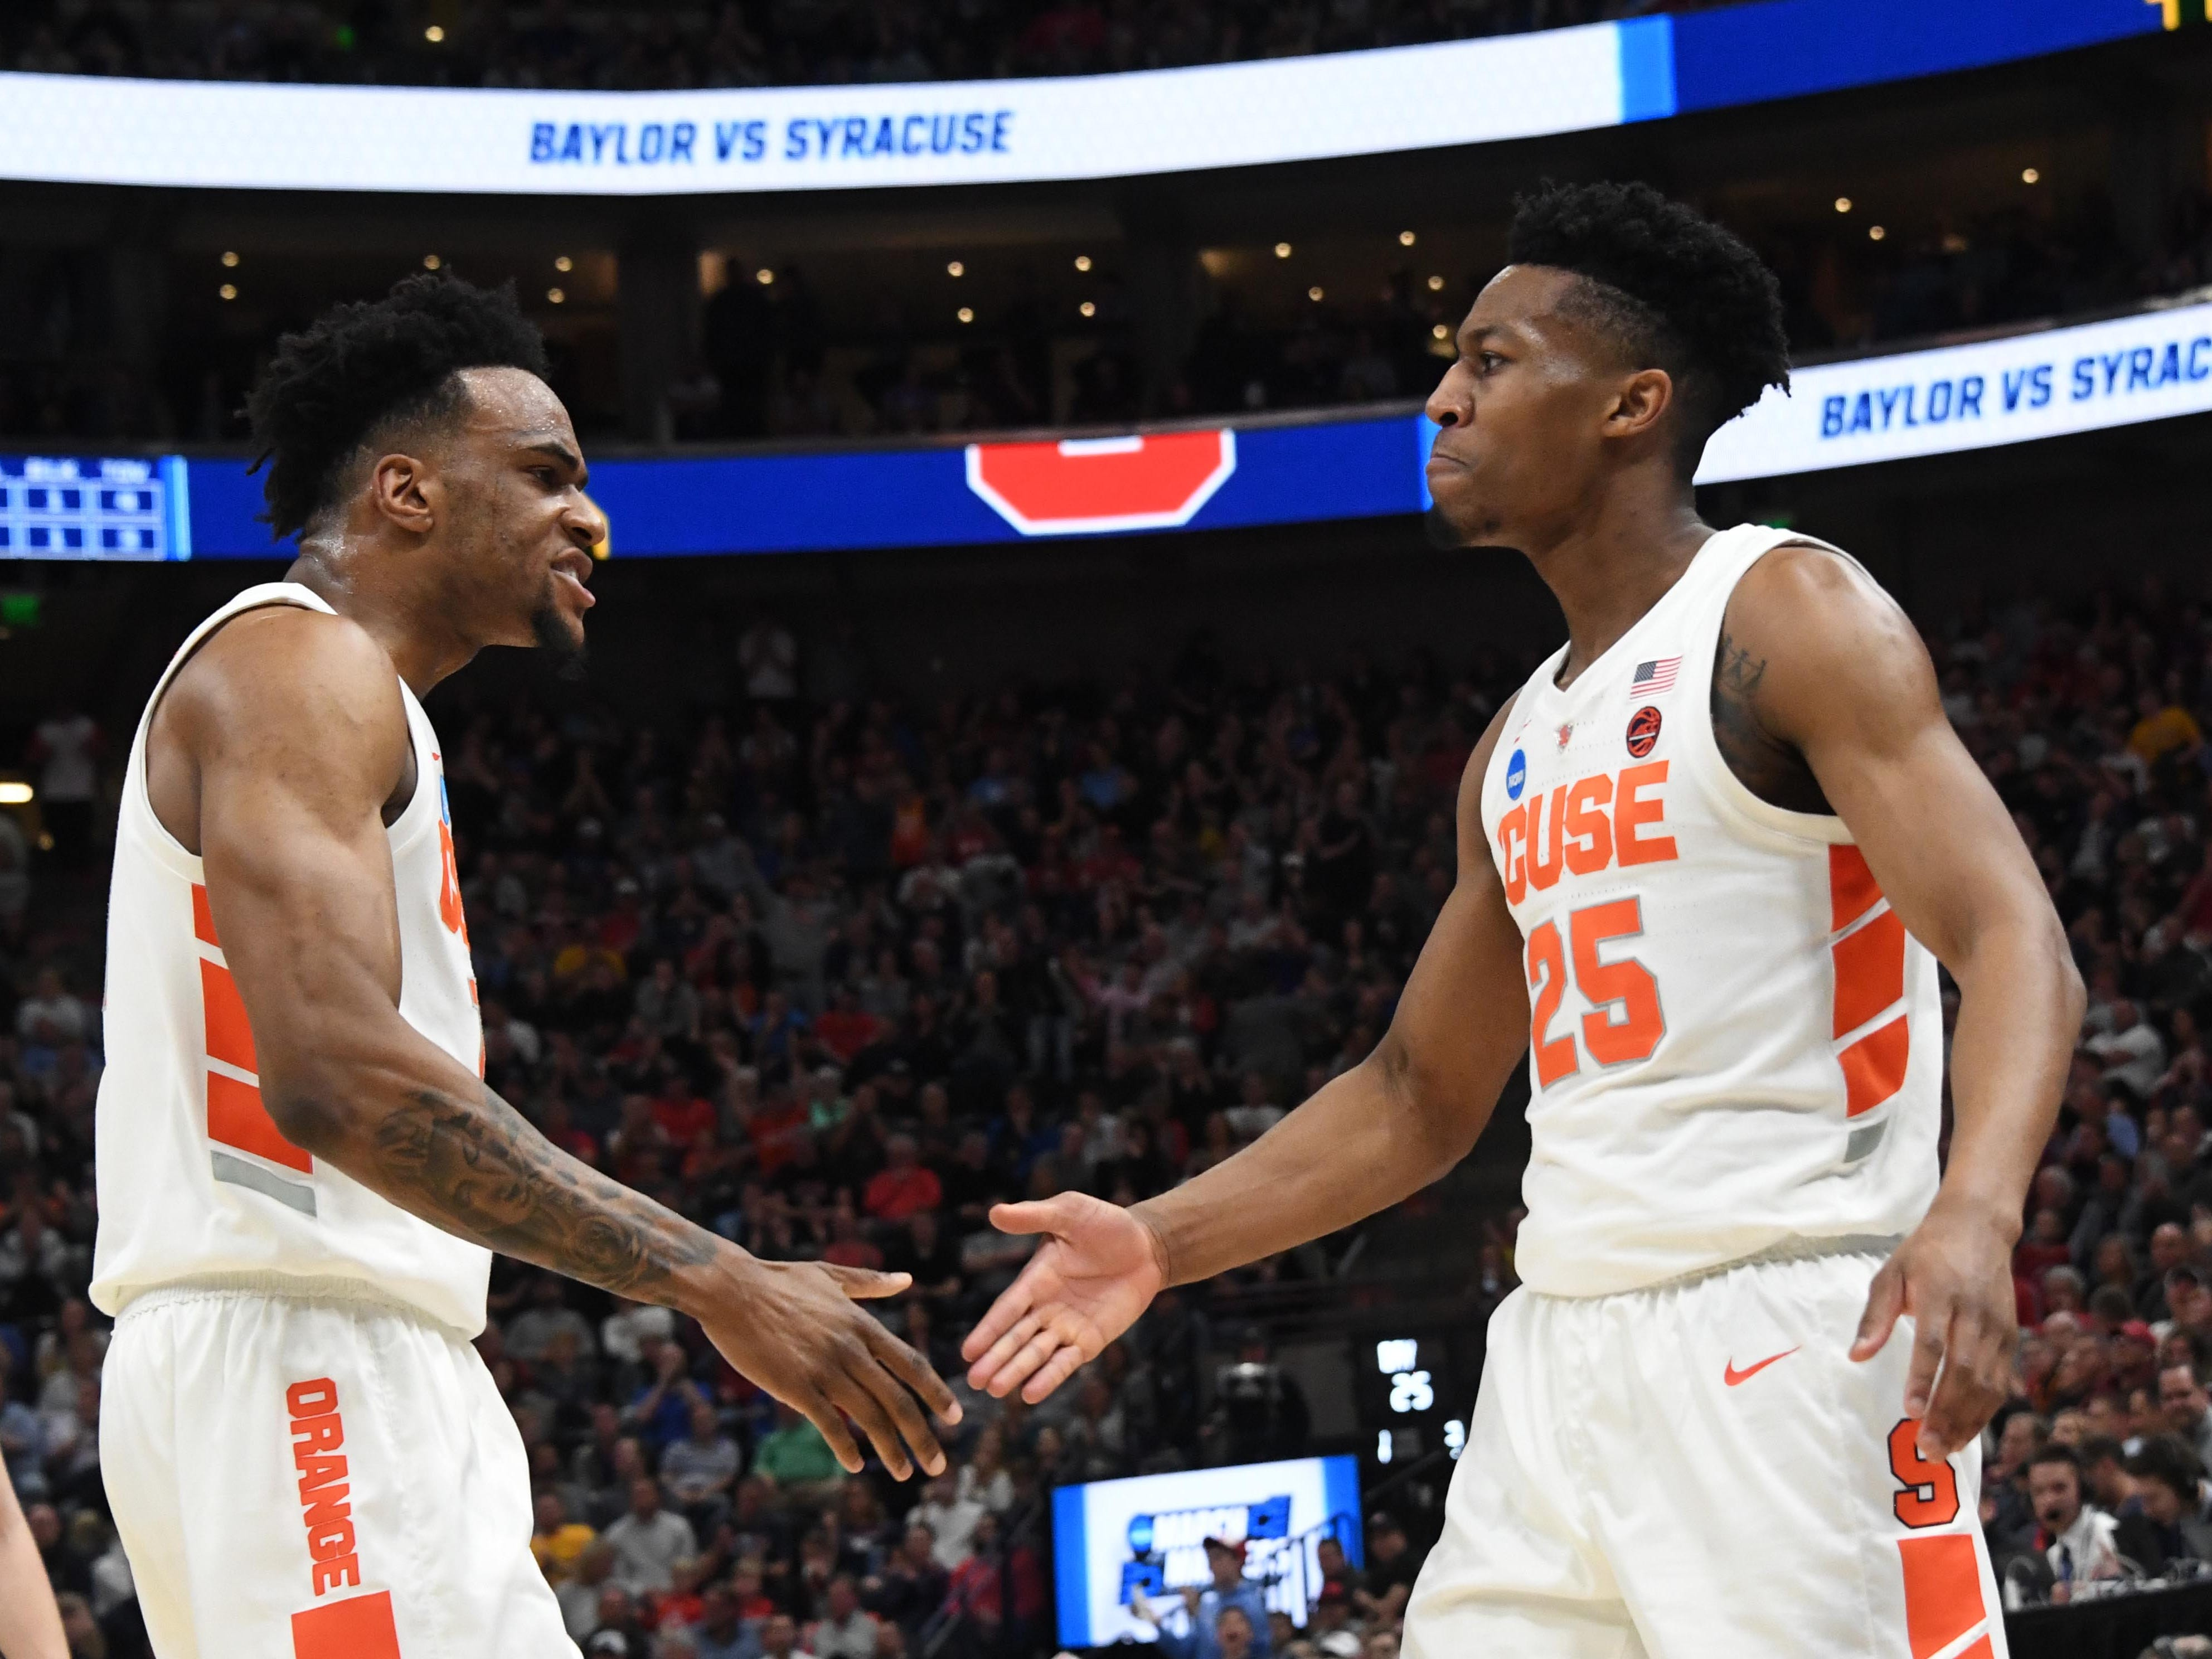 Syracuse guard Tyus Battle (25) celebrates with Oshae Brissett during the first half against Baylor.